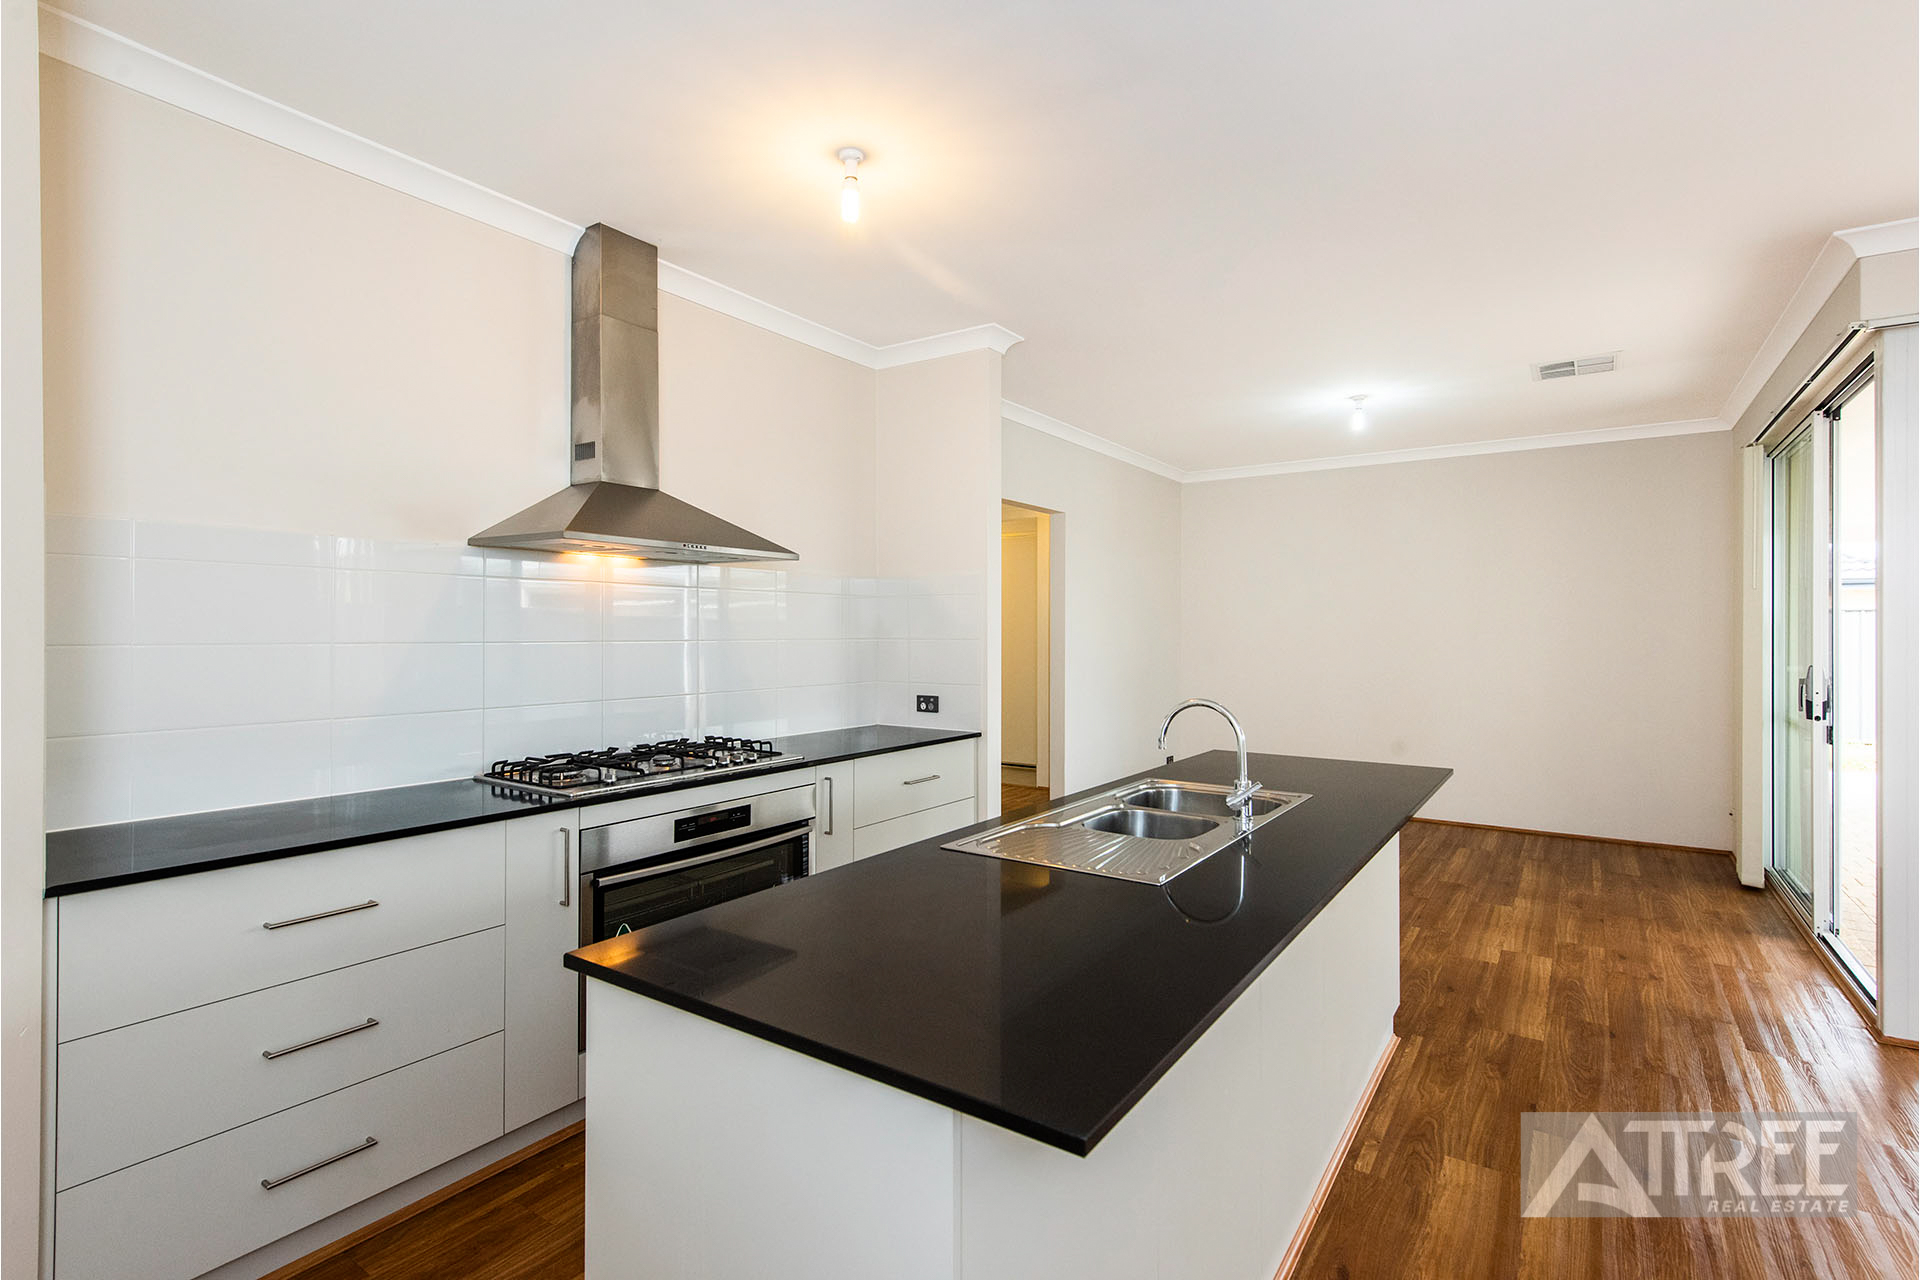 Property for sale in PIARA WATERS, 27 Albavale Road : Attree Real Estate